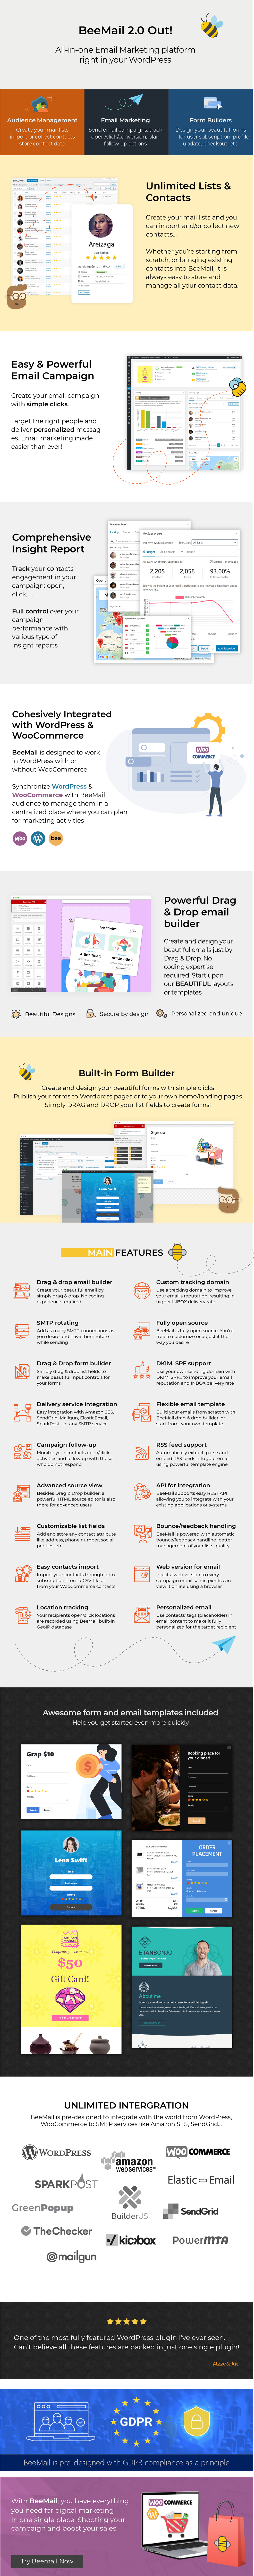 BeeMail - Email Marketing Plugin for WordPress & WooCommerce - 1